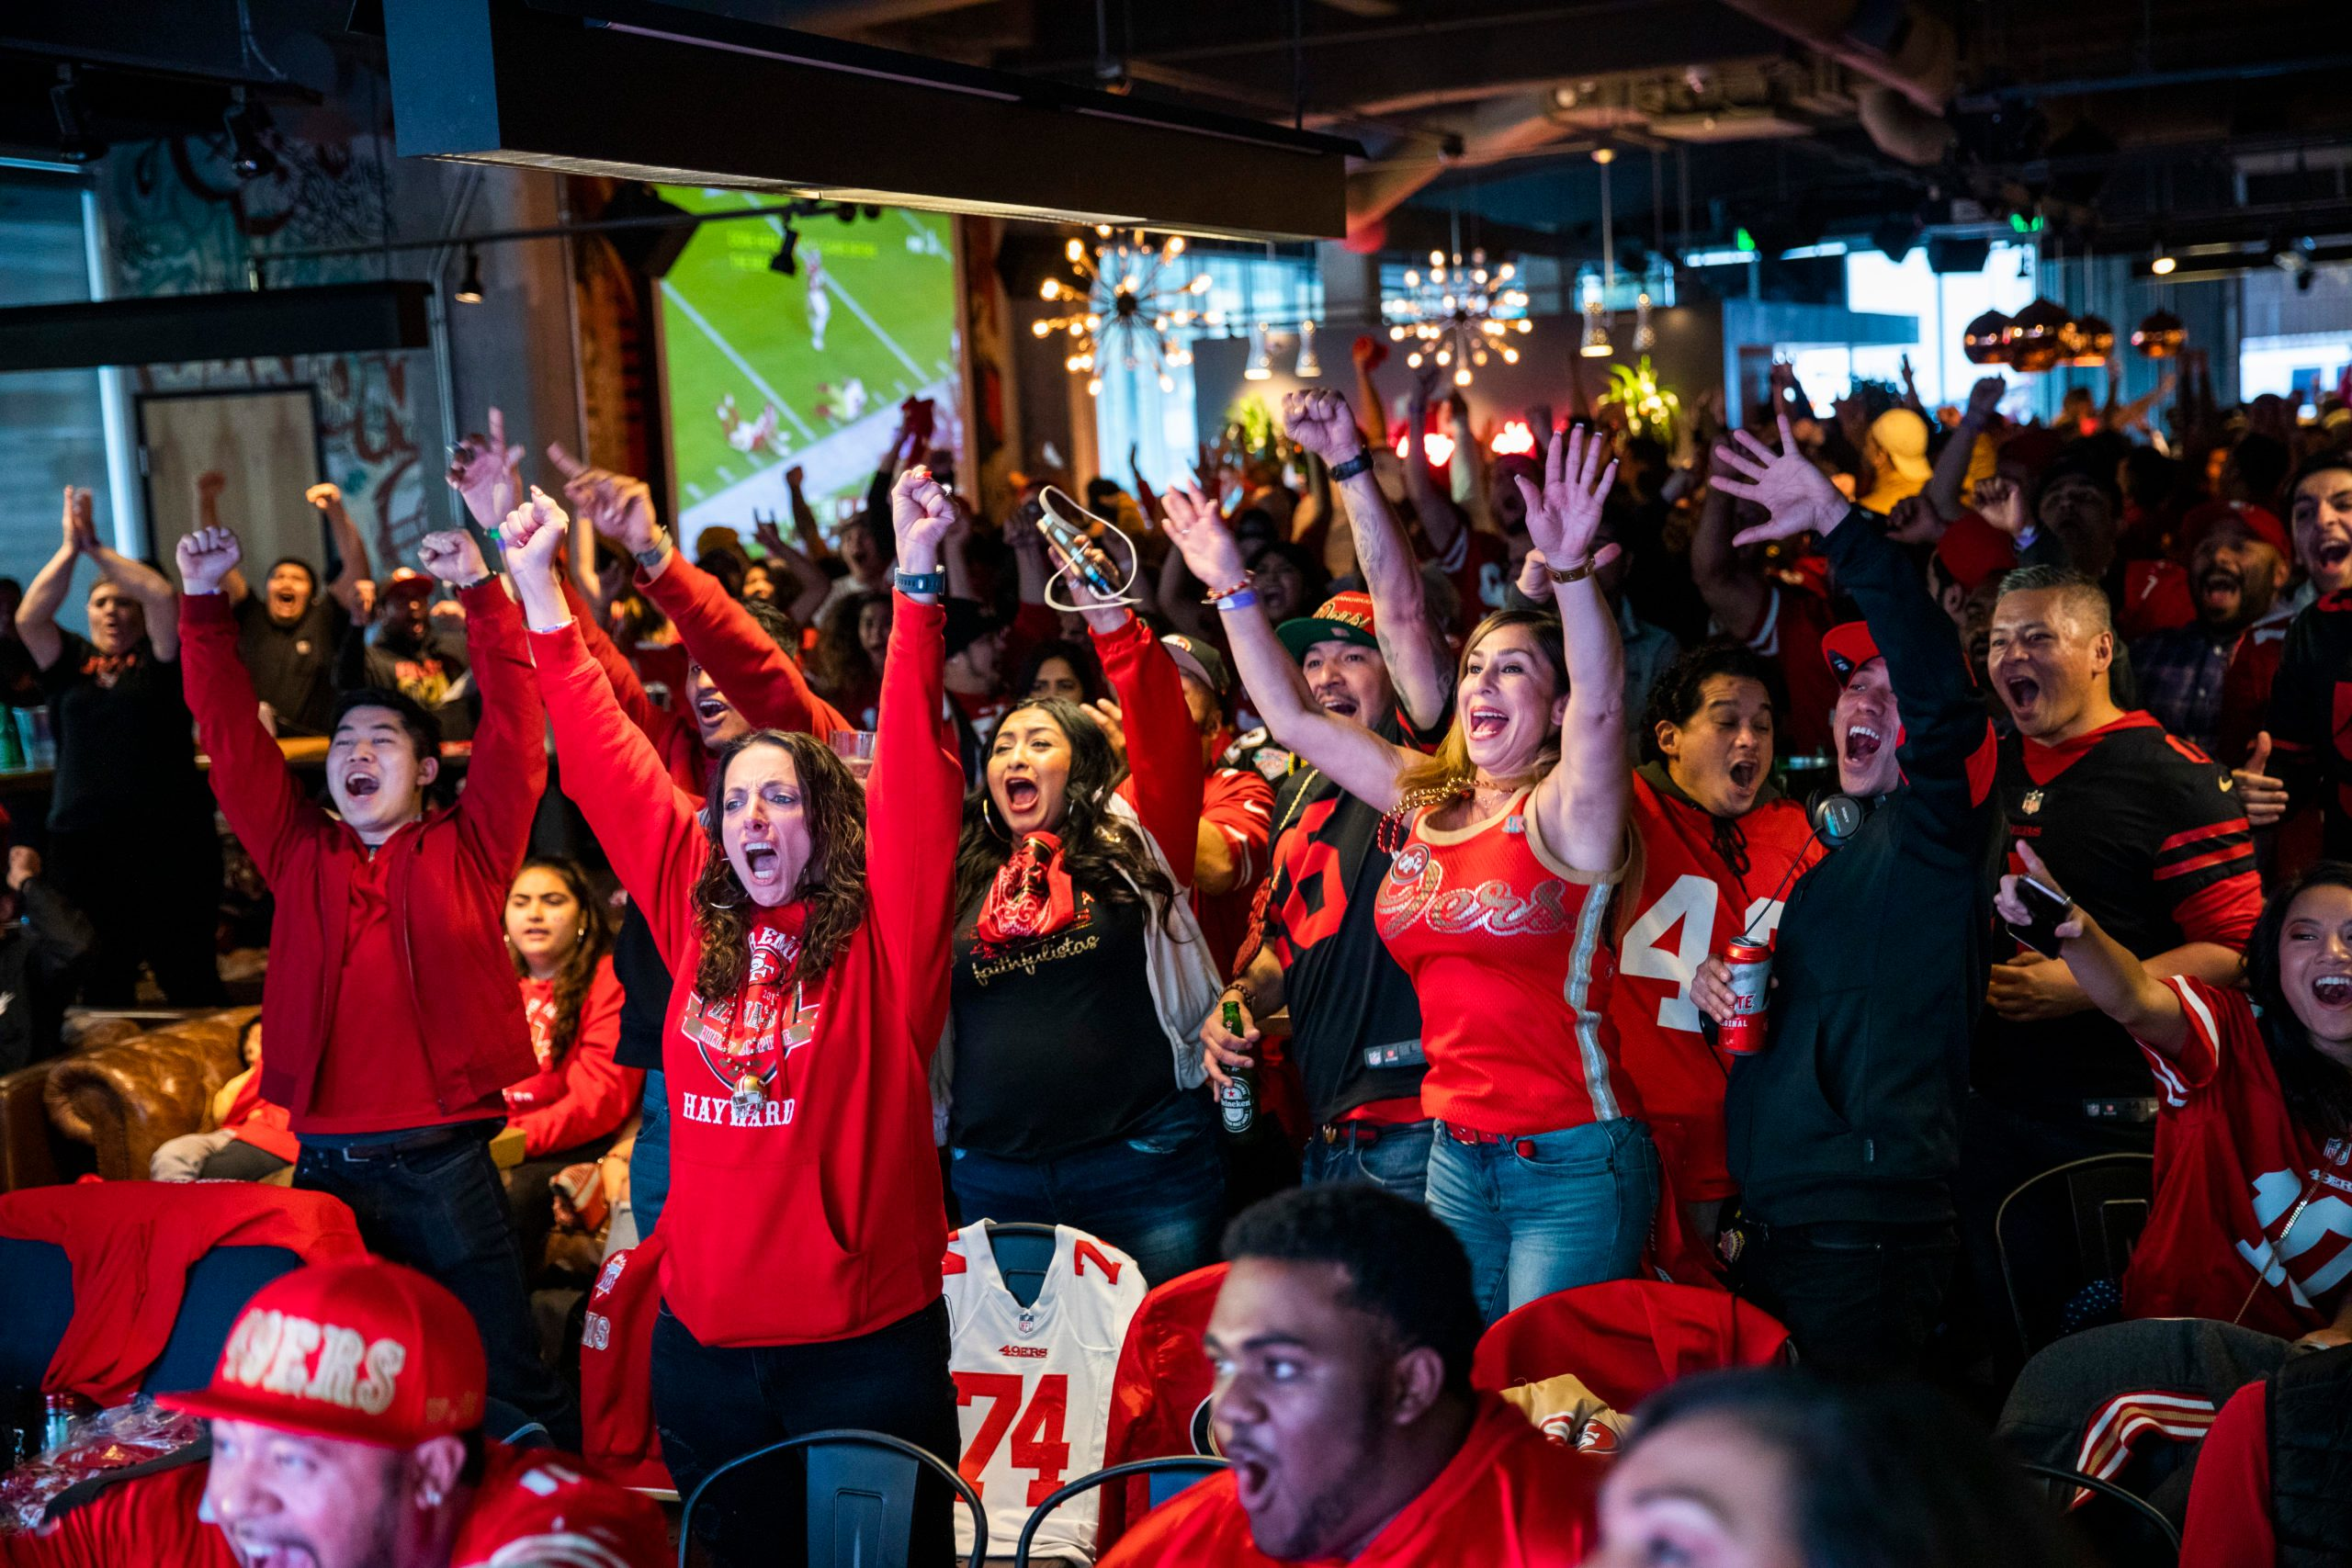 San Francisco 49ers' Fans Watch Their Team's Super Bowl LIV Match Up Against The Kansas City Chiefs